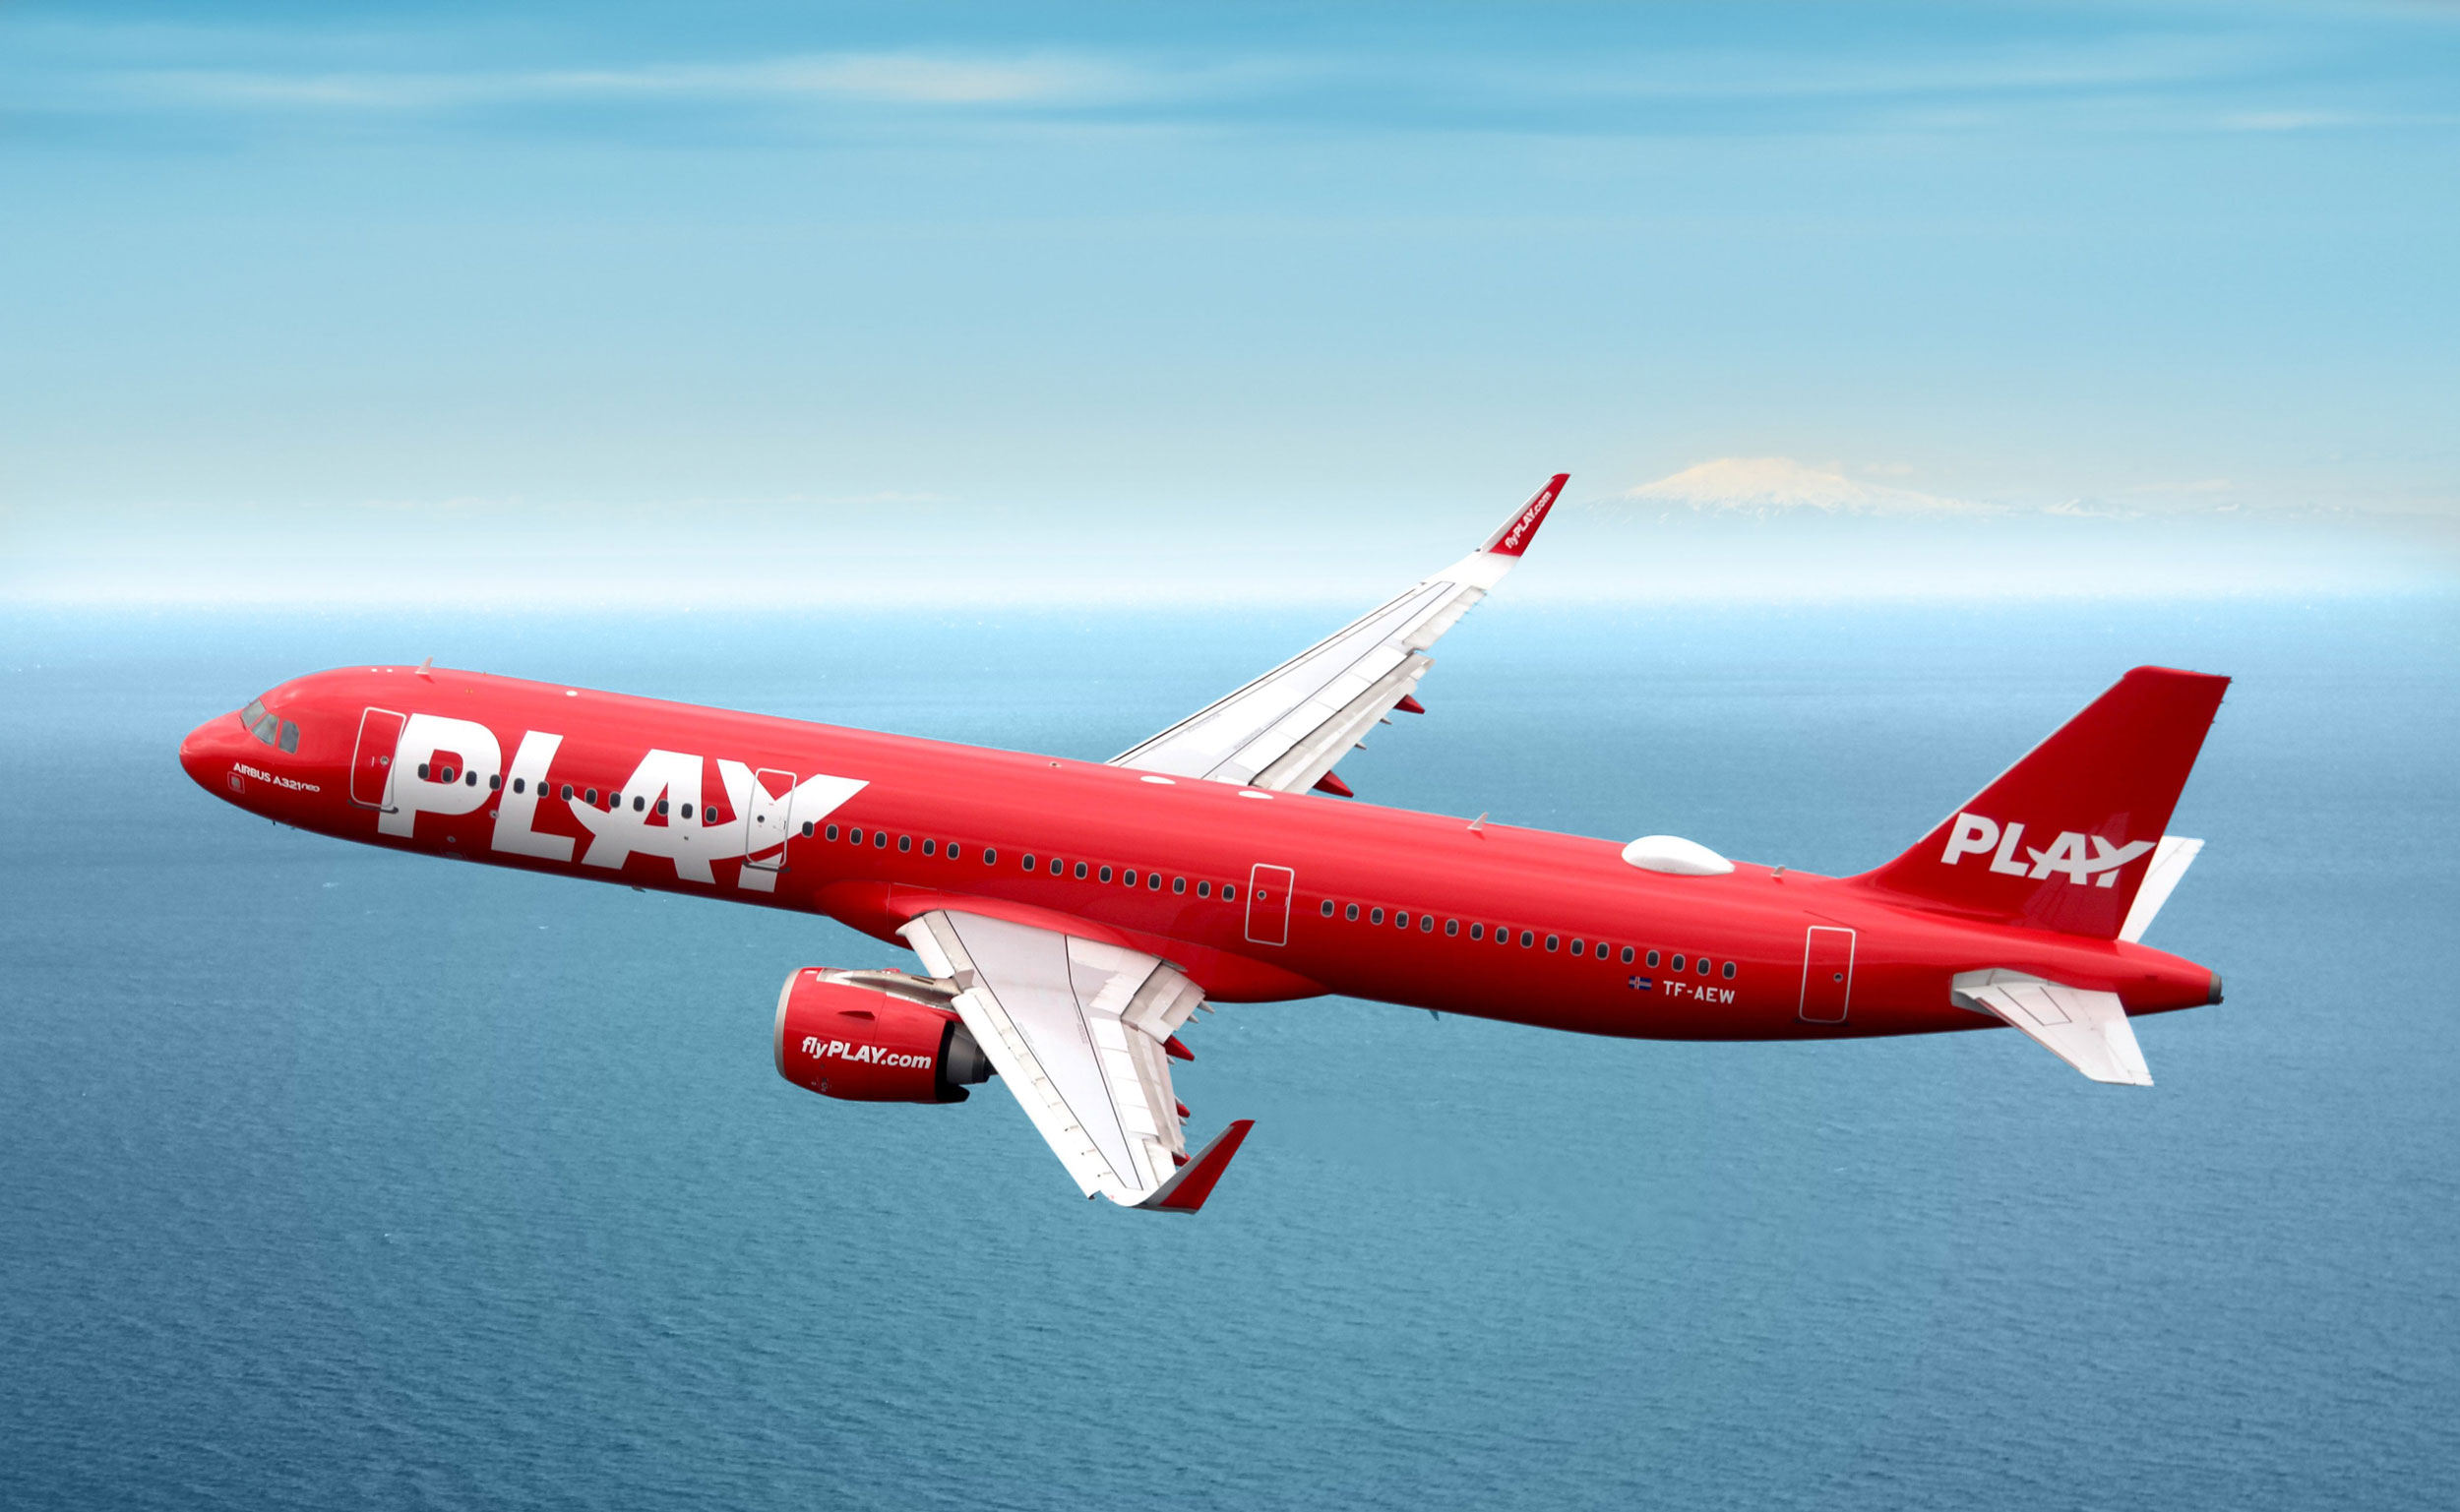 PLAY airline A320